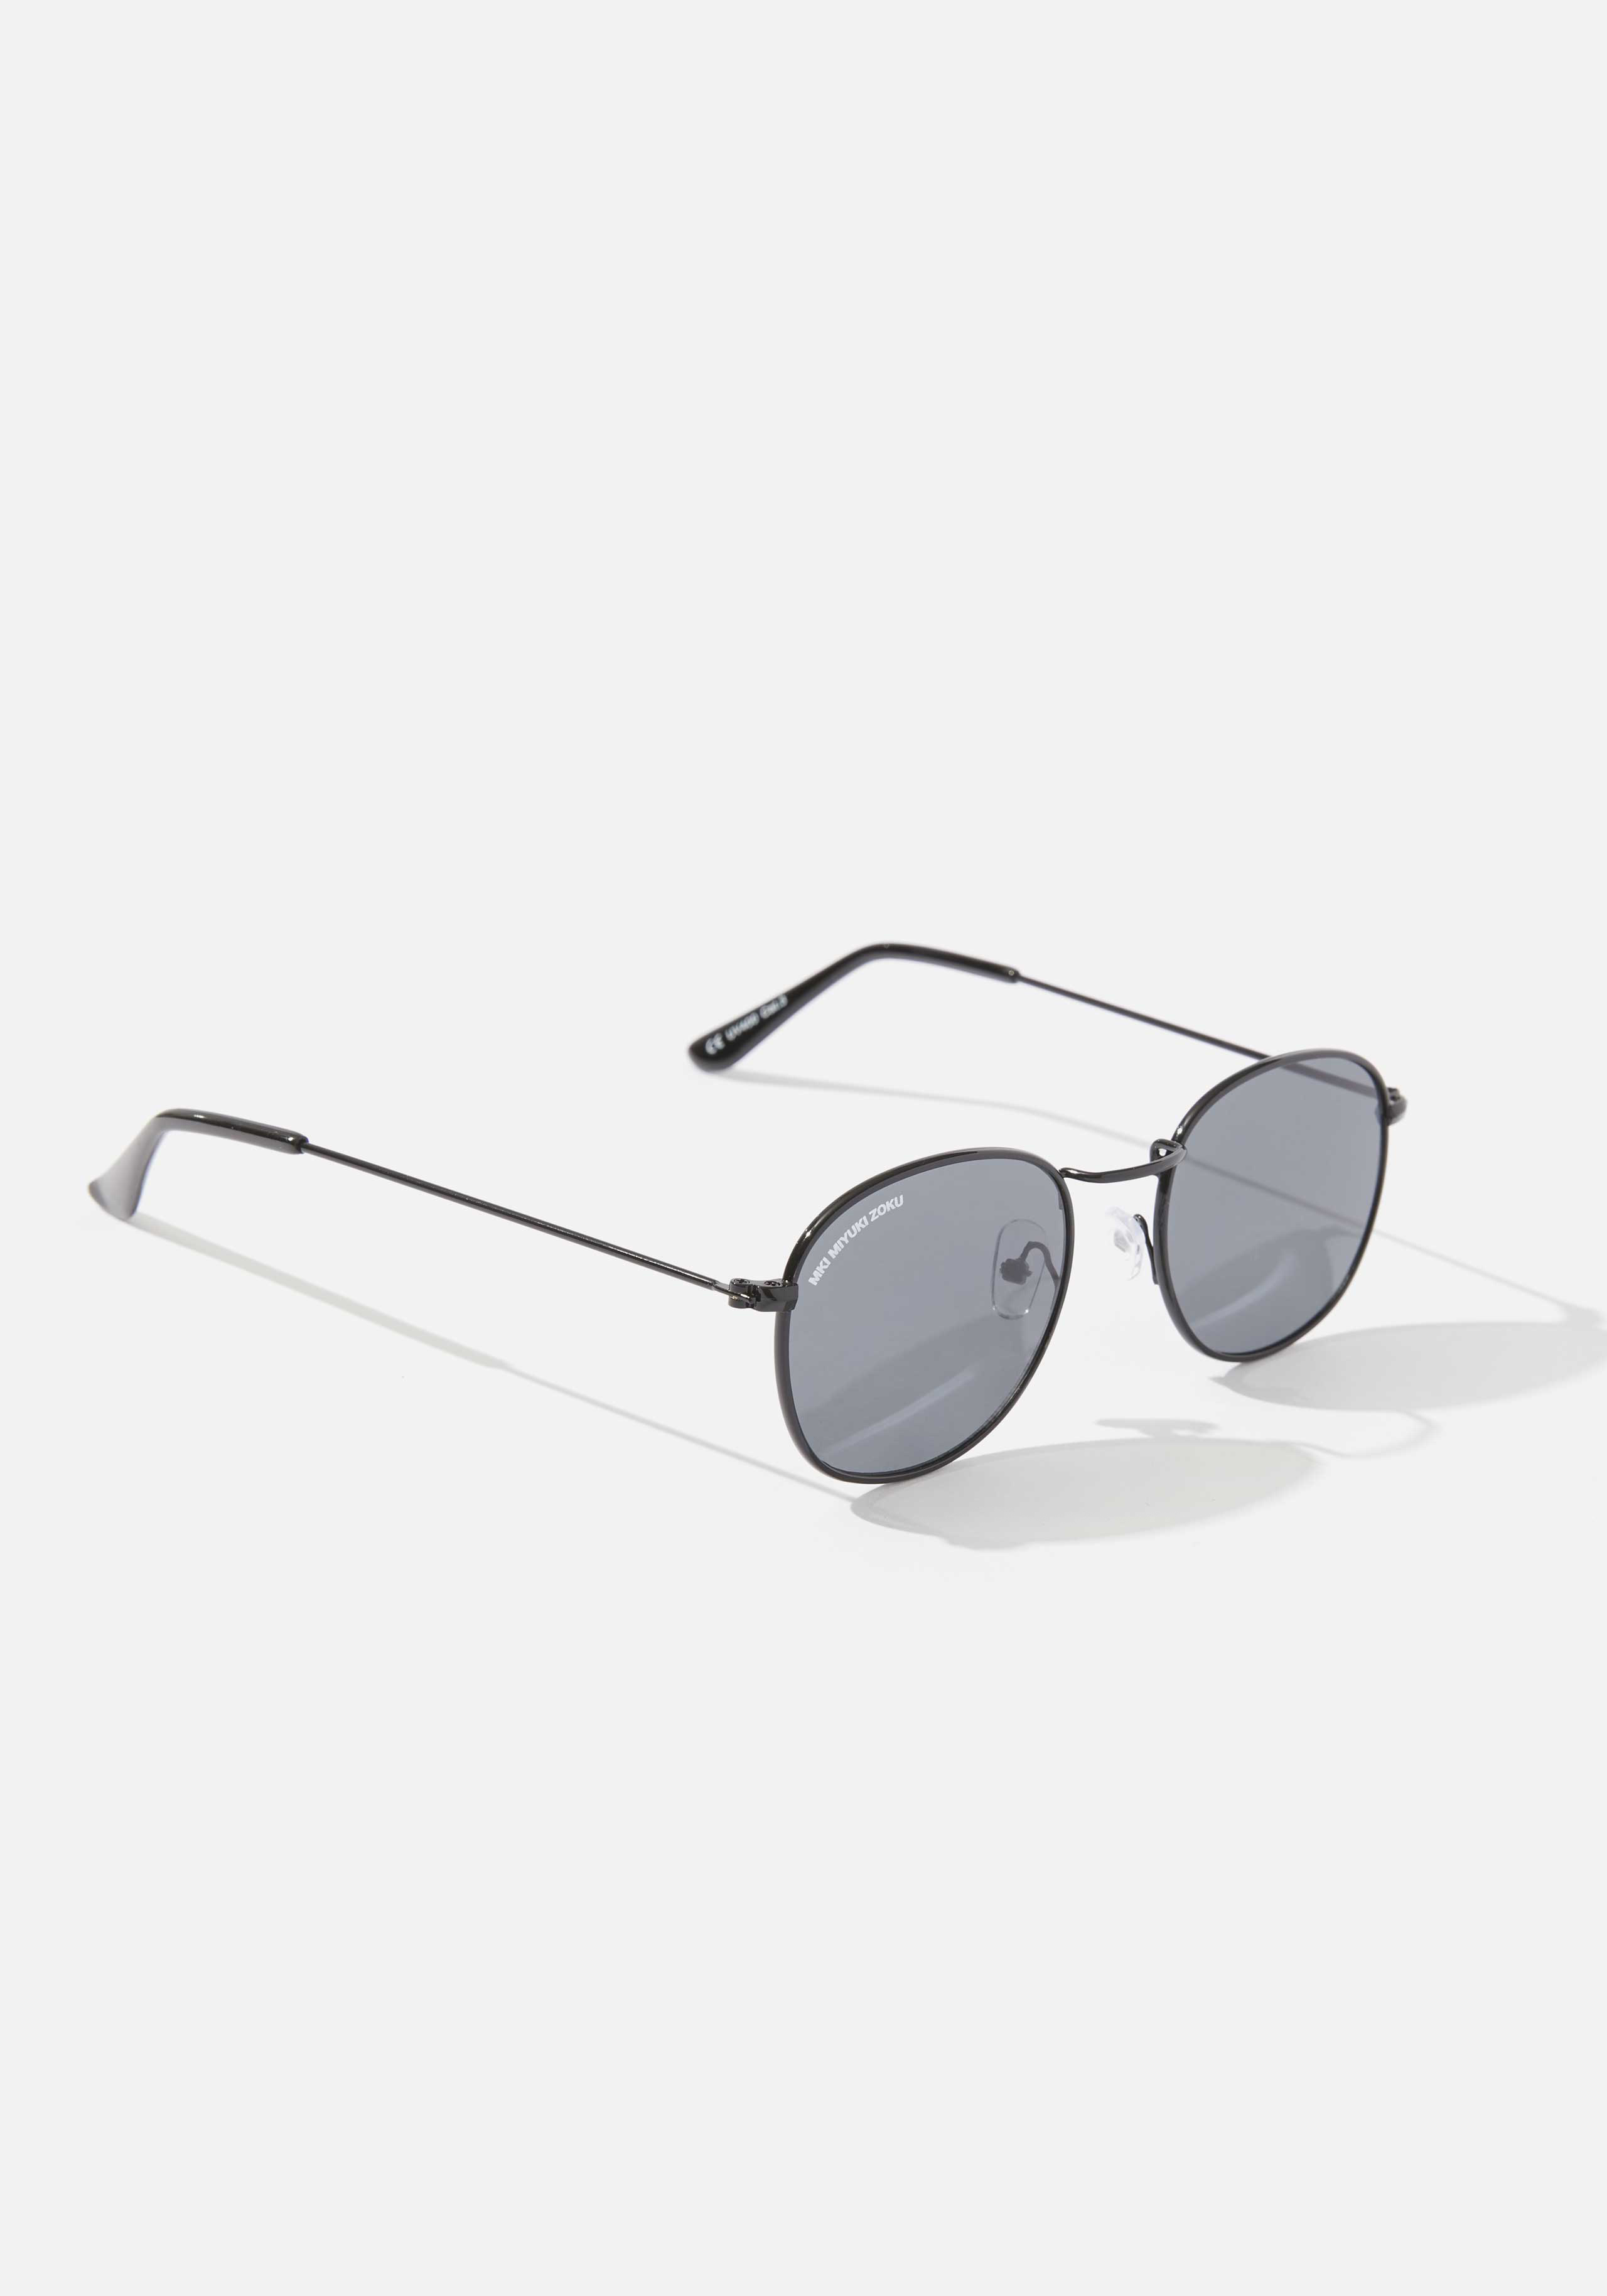 mki metal round sunglasses 2